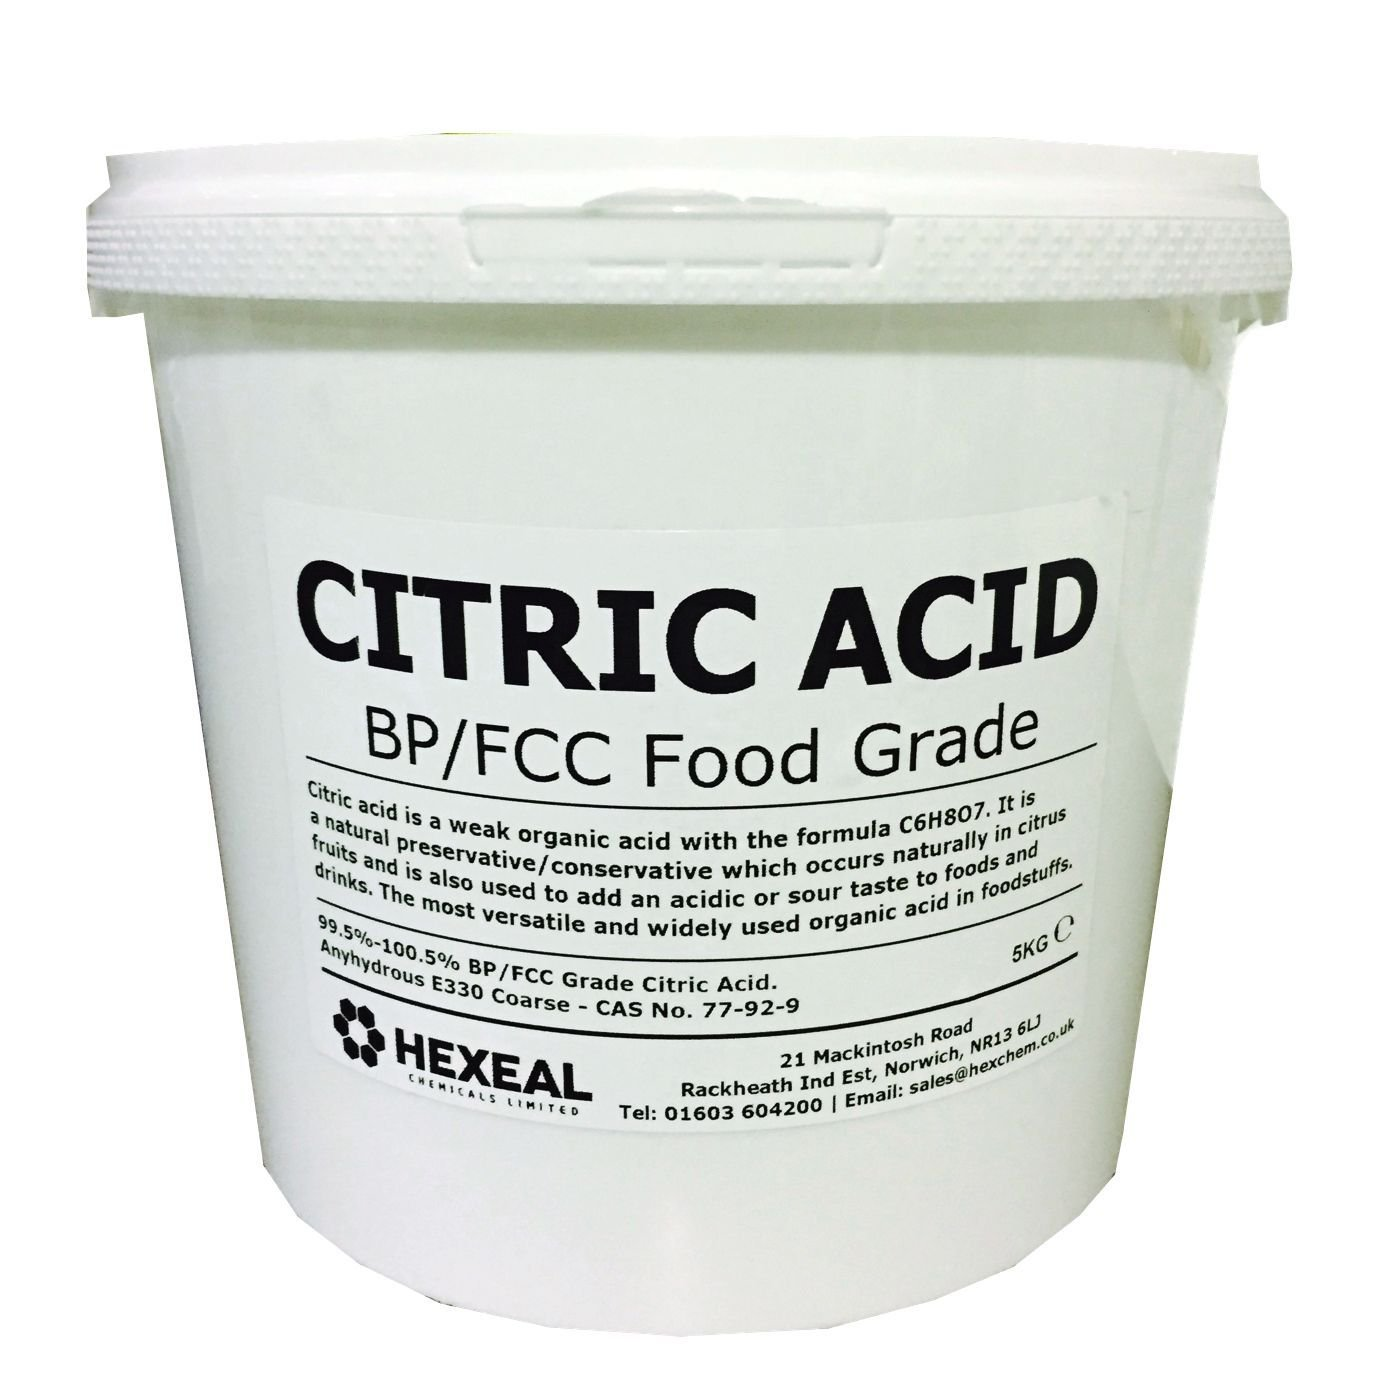 CITRIC ACID | 5KG BUCKET | 100% Anhydrous | Fine | GMO Free | BP/FCC Food Grade